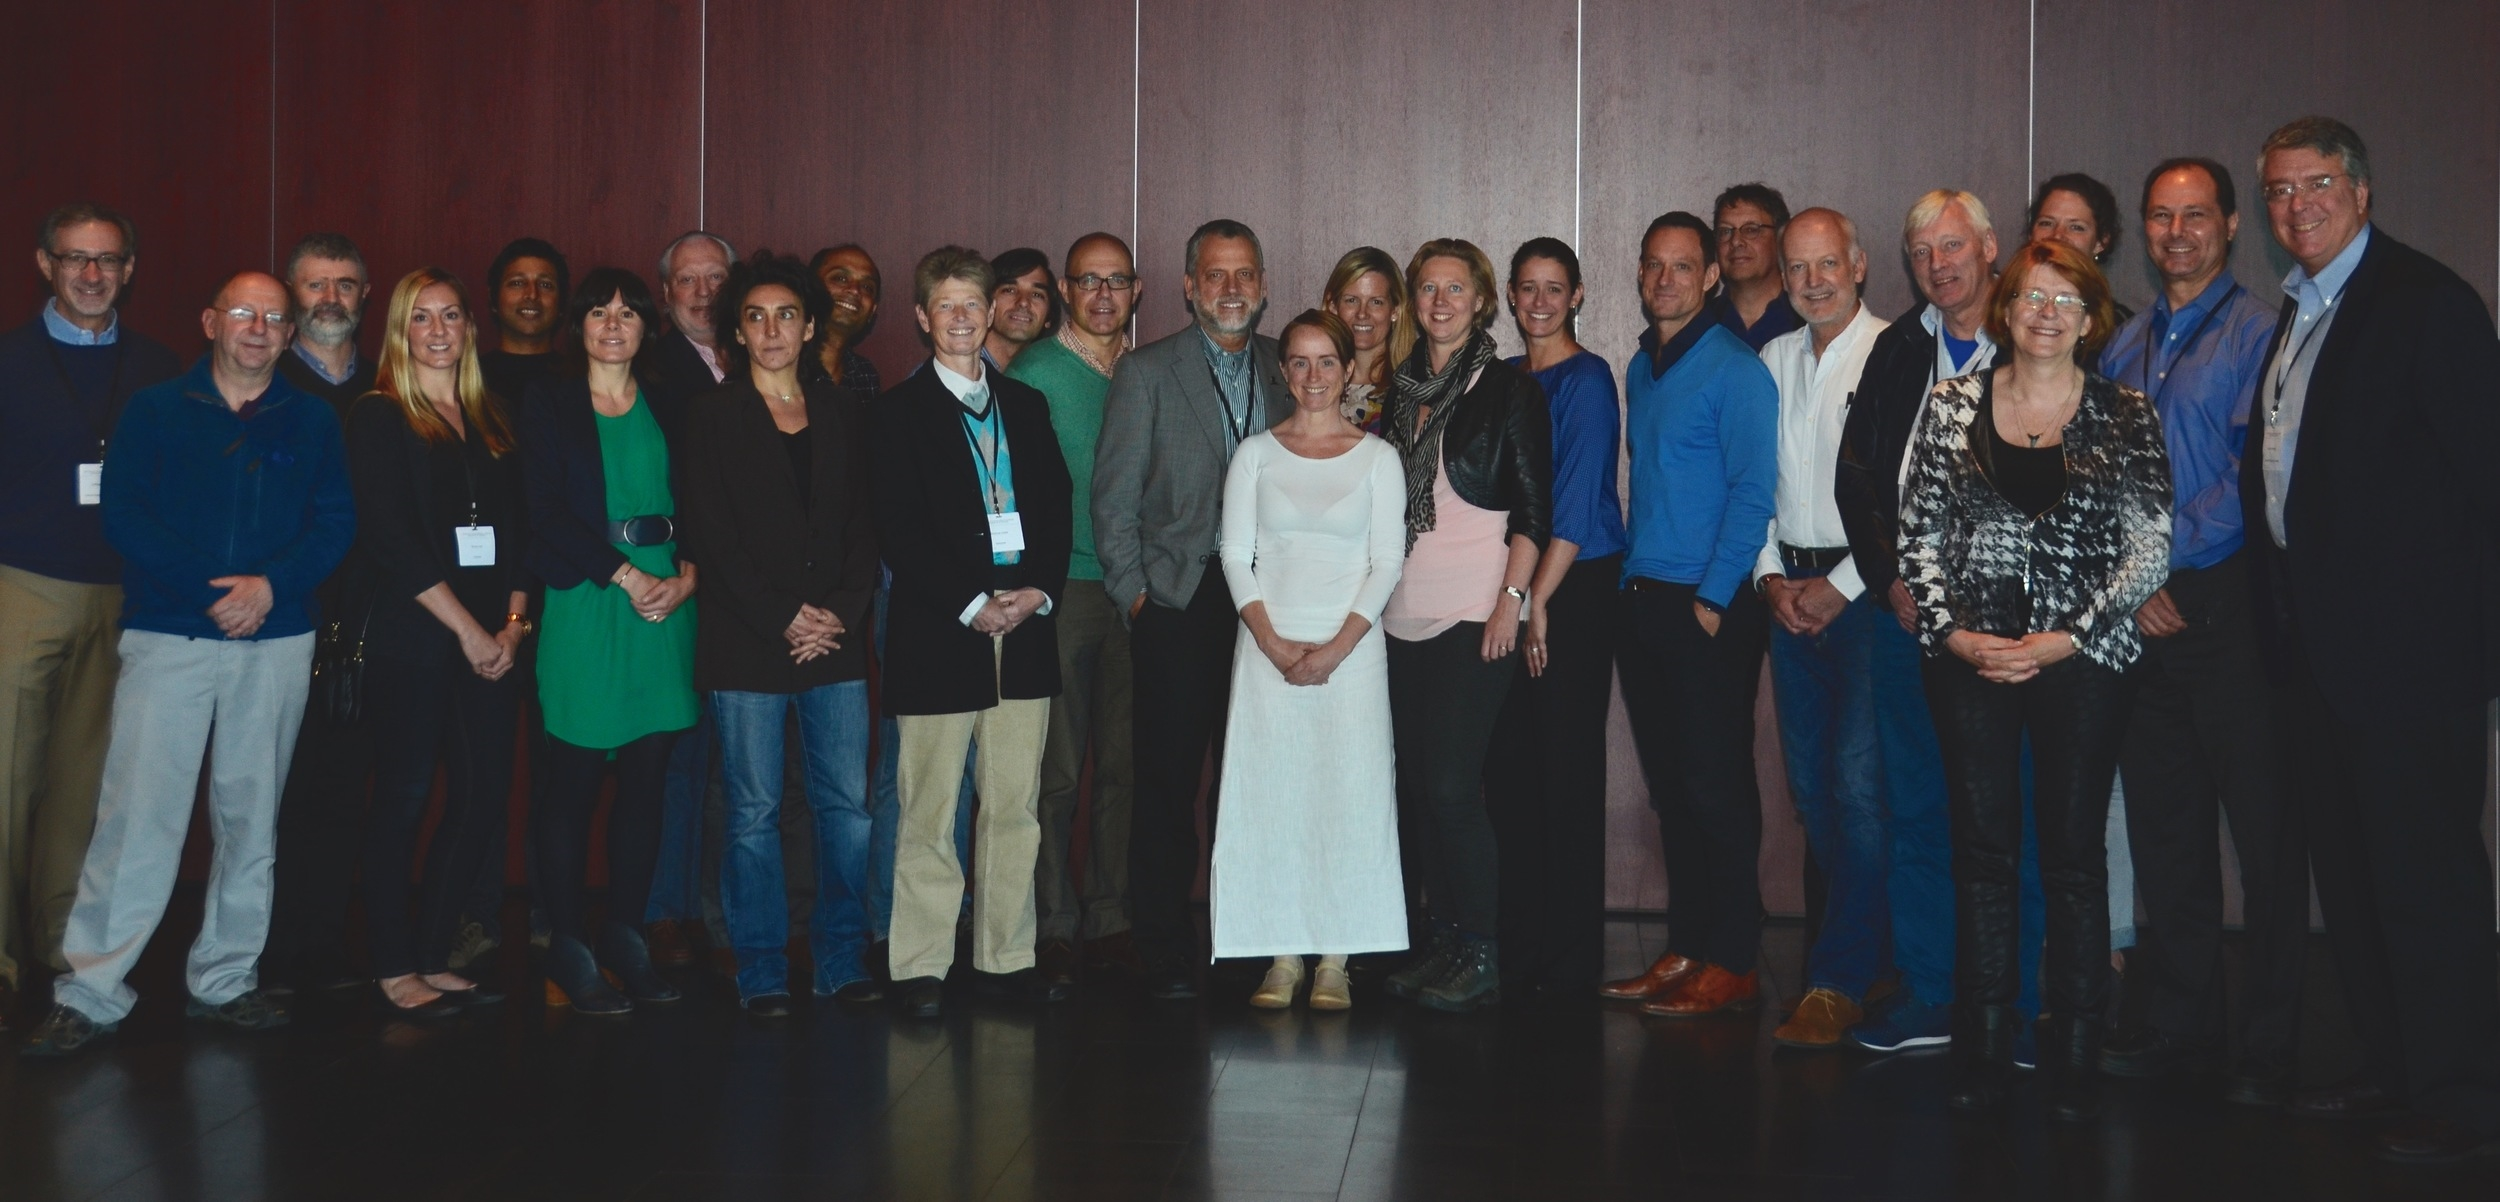 Posterior Fossa Society: members who participated in the 2015 Consensus Meeting in Reykjavík, Iceland.